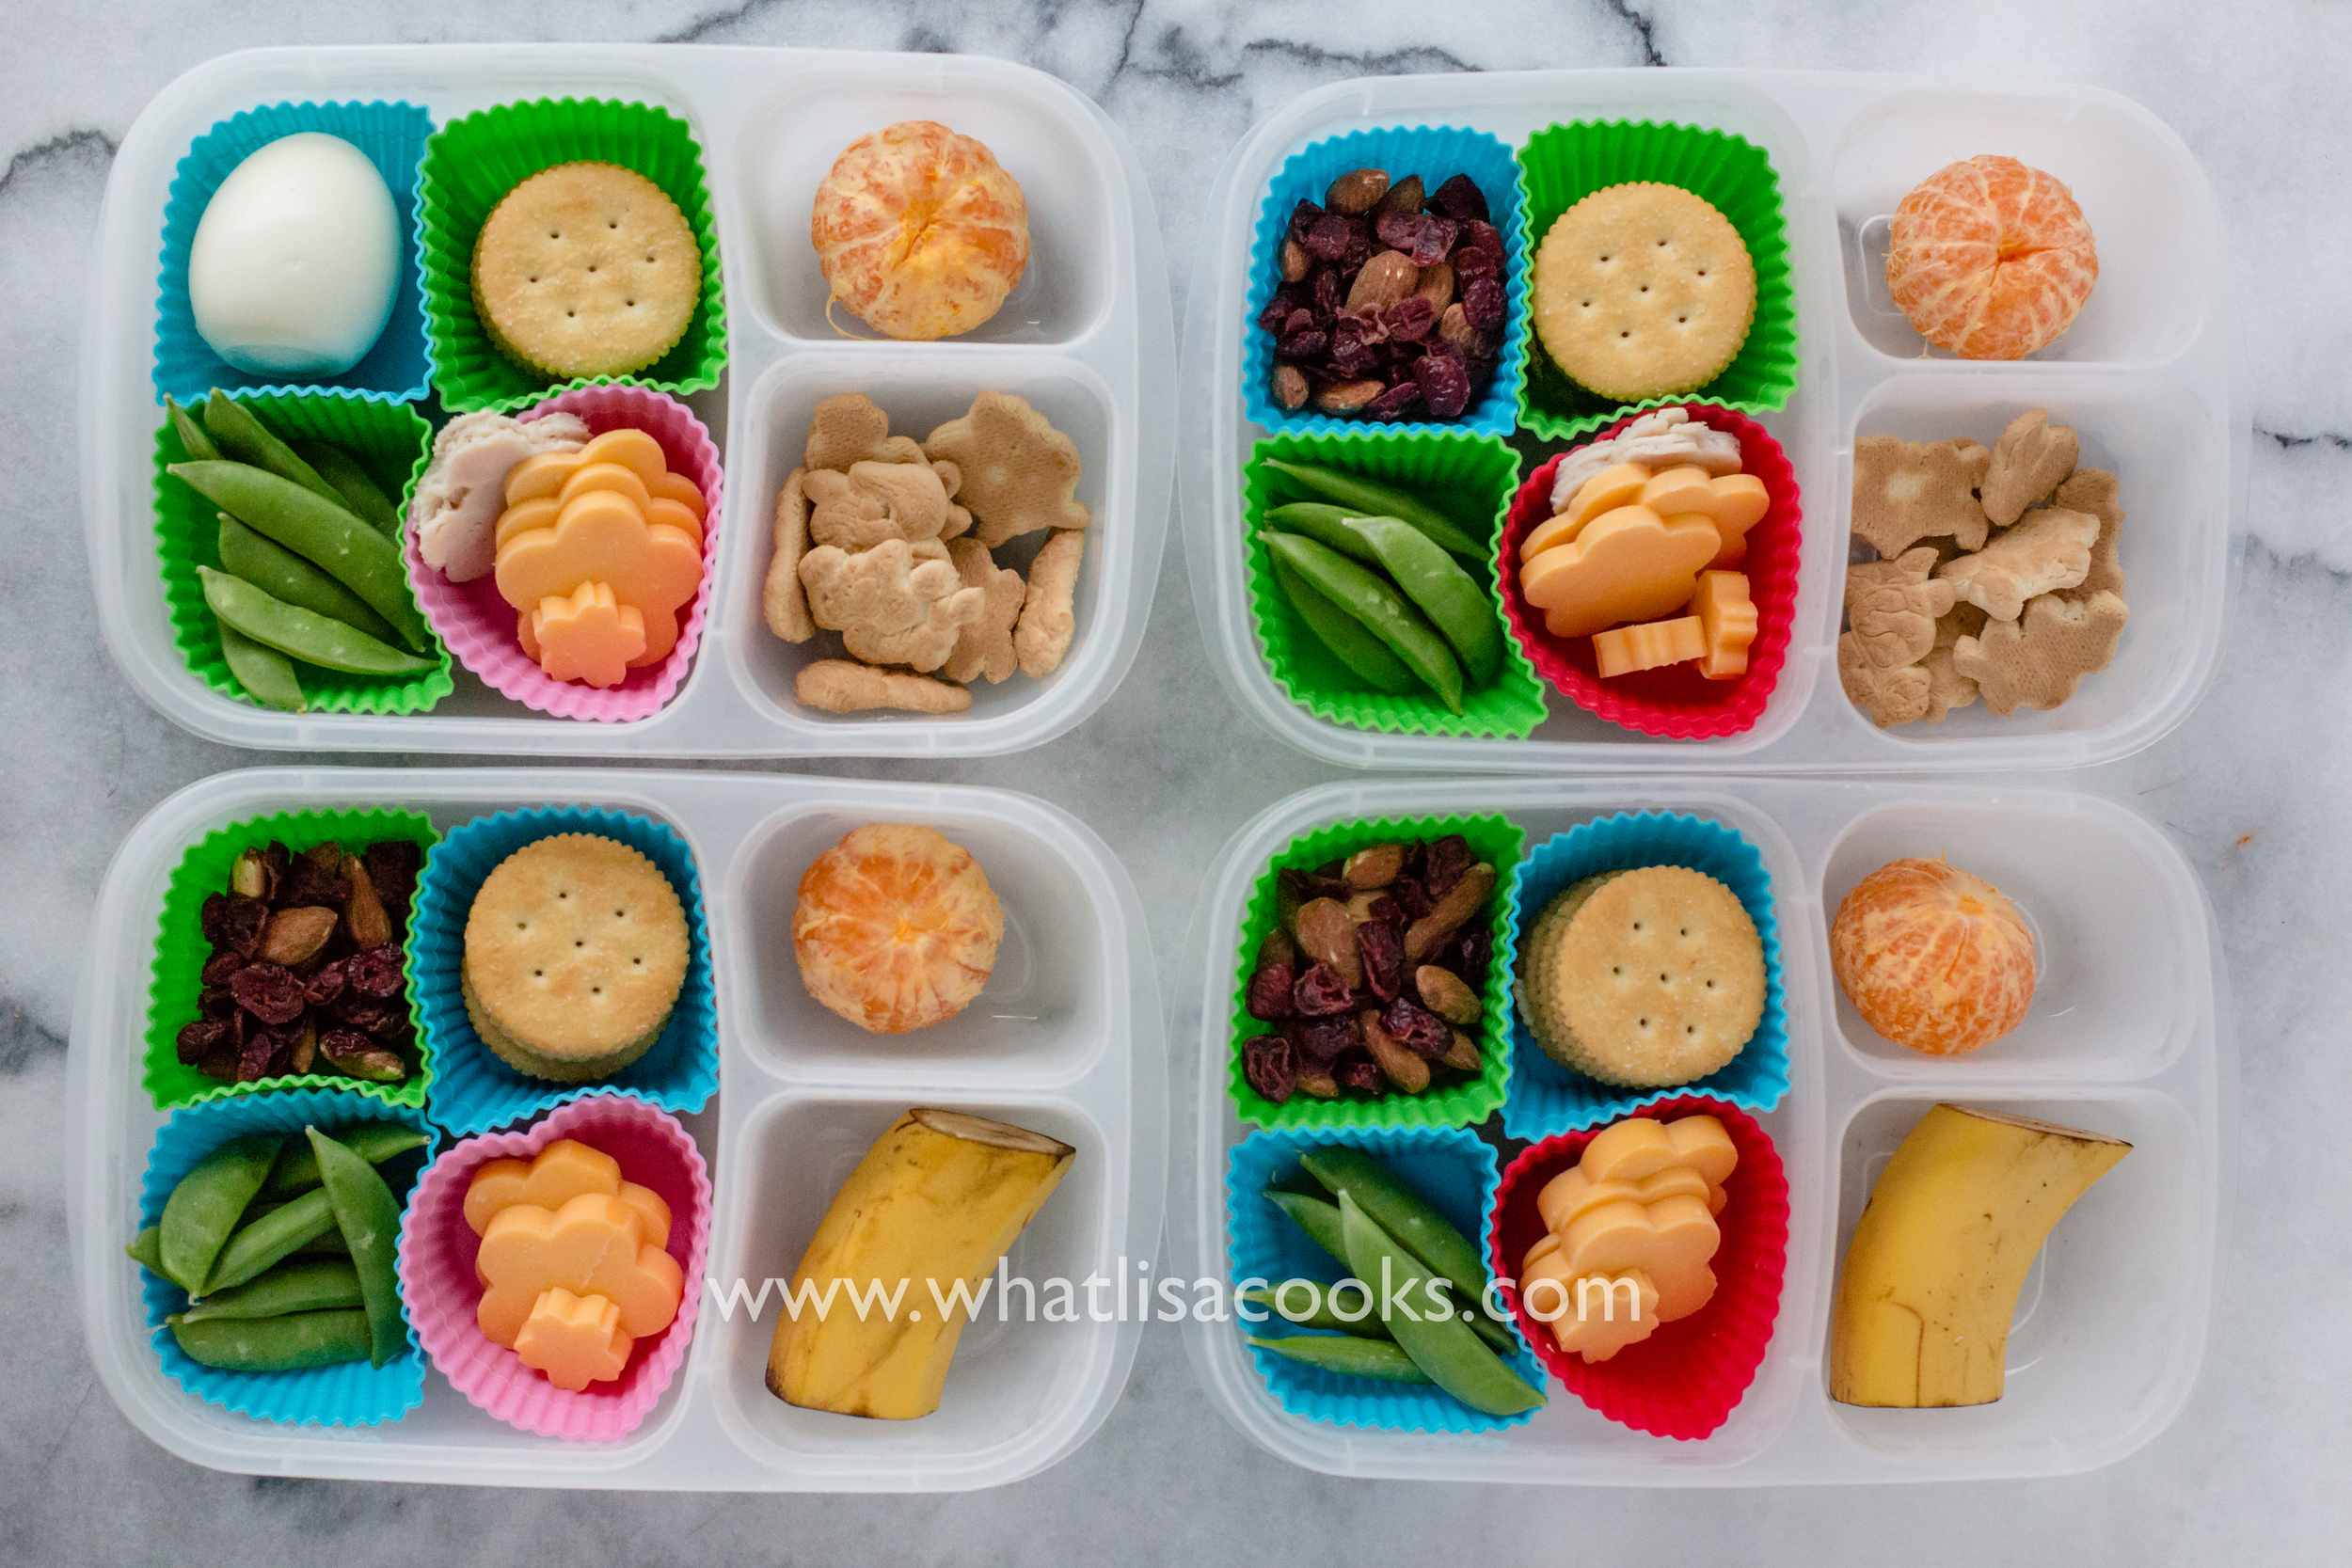 Crackers, cheese, turkey, dried fruit, sugar snap peas, orange, banana, and one has a boiled egg.